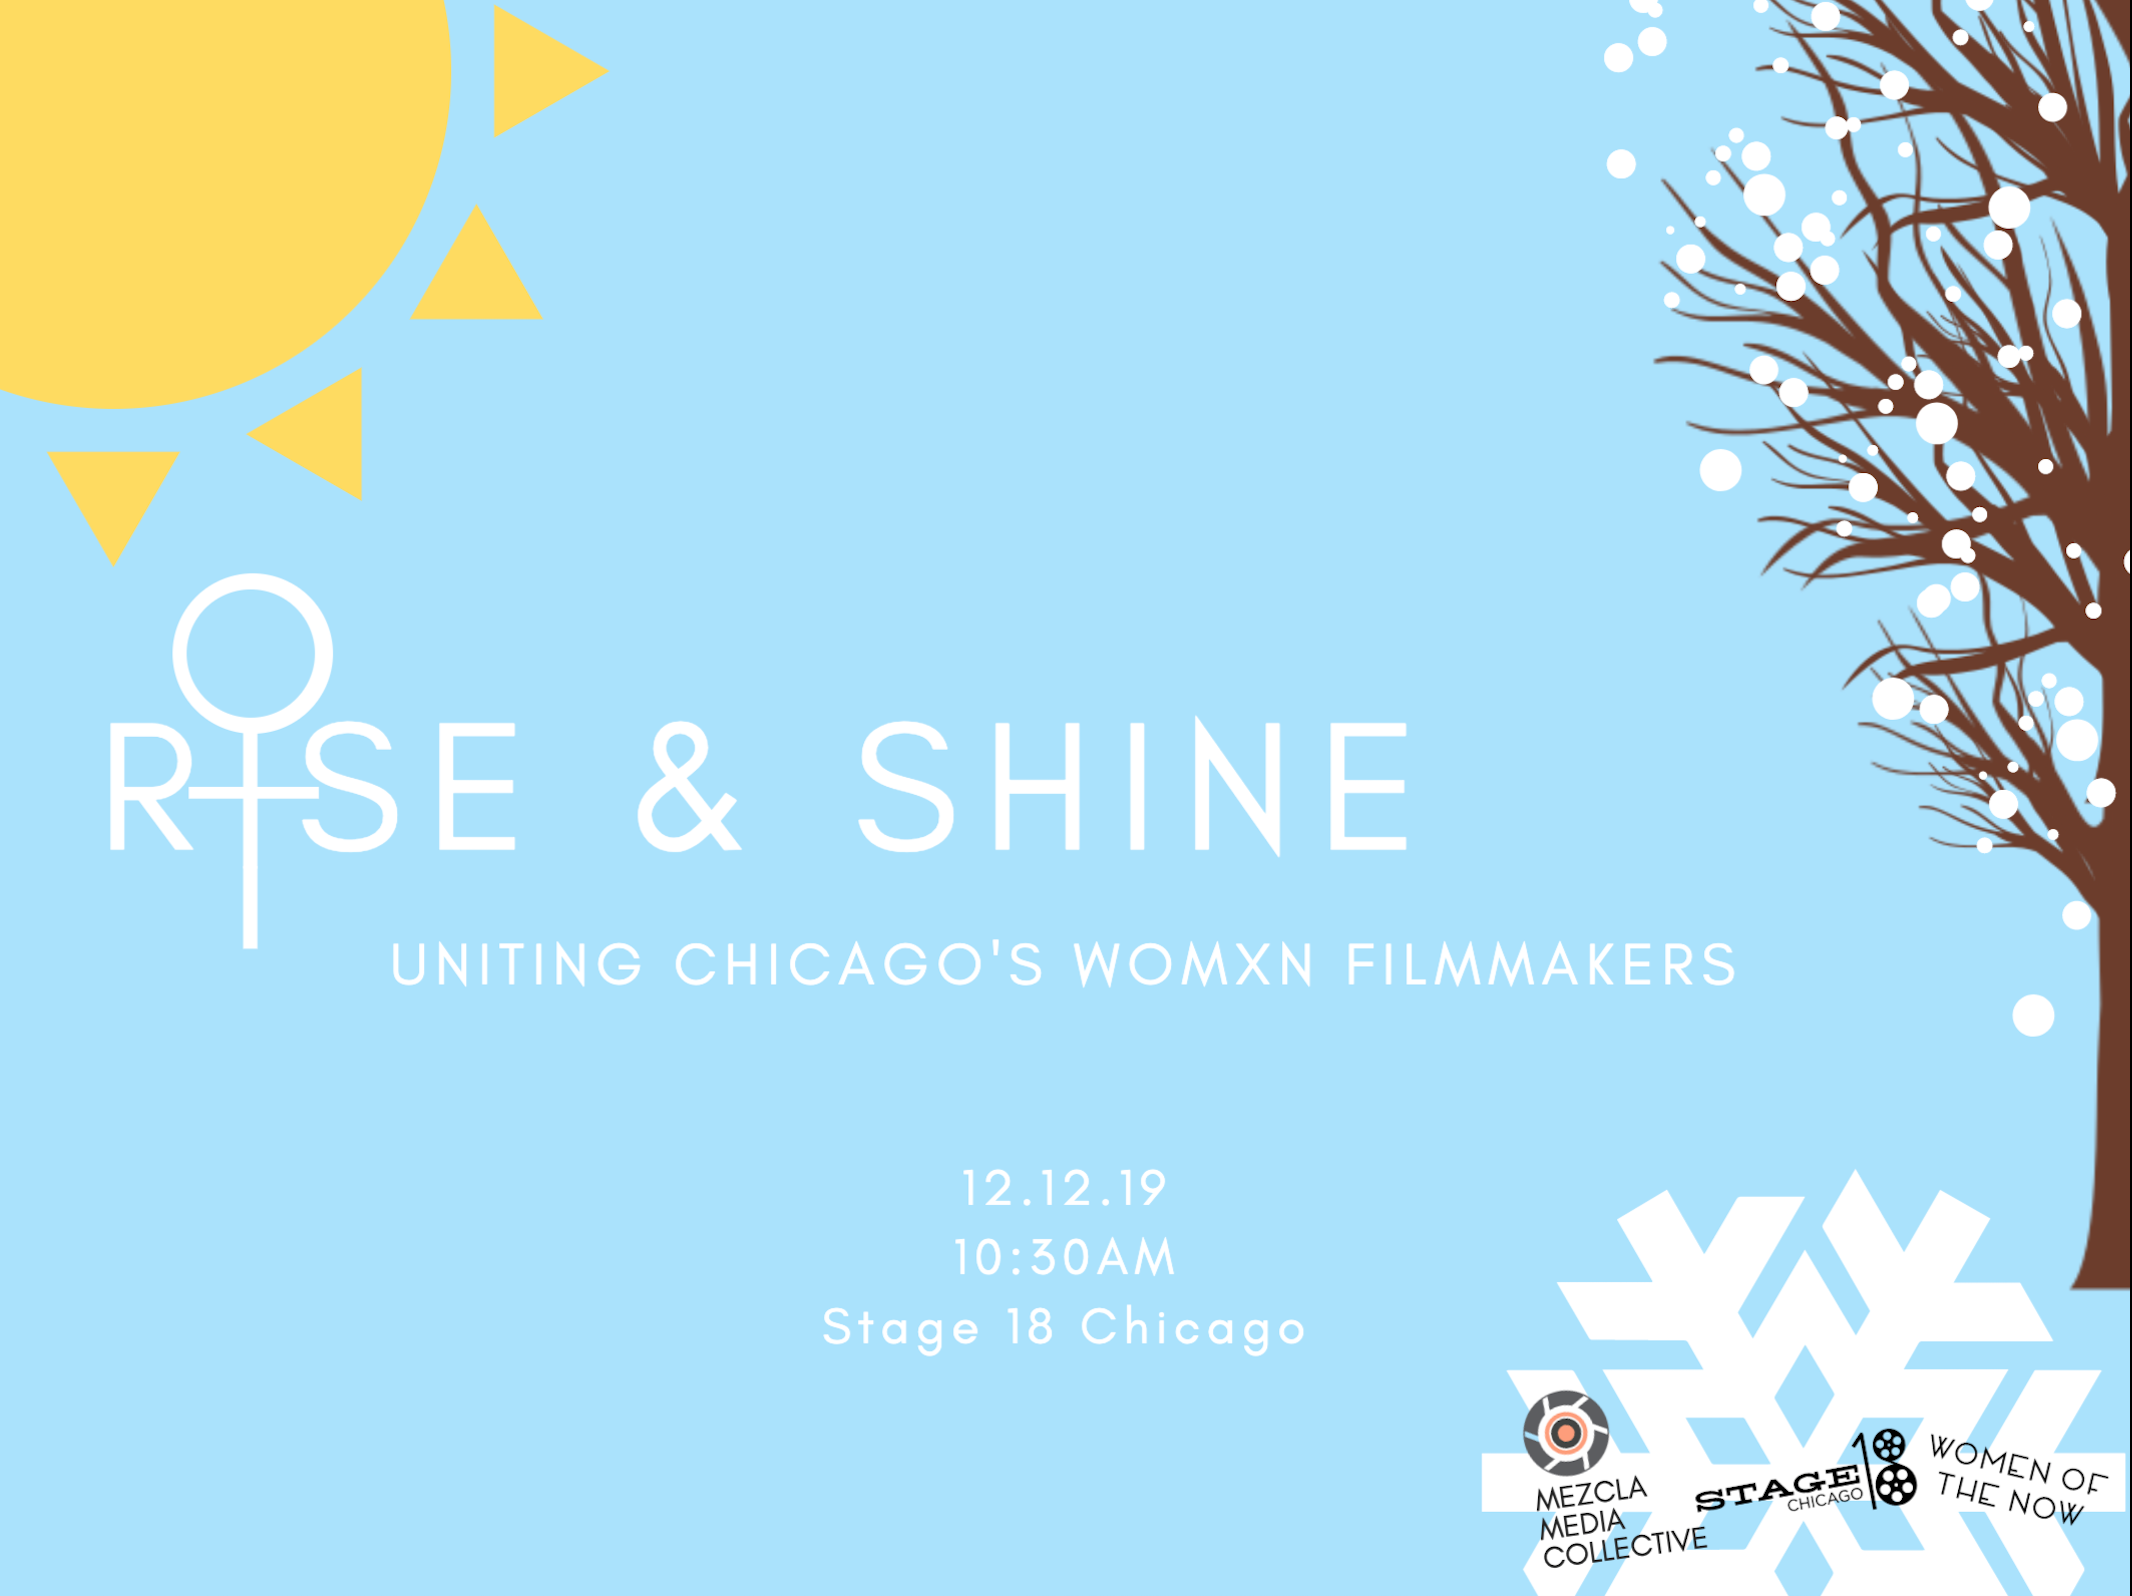 Tickets available  here.   Who:  Calling all womxn/girls/ladies/females/femmes/moms/thems/y'alls/babes/matriarchs/champions/filmmakers/producers/directors/editors/writers/artists !!  We want to invite all of the she/hers and they/thems to come and bask the presense of one another. Our goal is to build relationships, friendships, bridges, and worlds and walk away with contacts you didn't have before.    What:  Pancakes, coffee, mimosas, pastries, finger sandwiches! (GF/DF/VEG/CFA)  Meeting eachother in a non-threatening enviornment.  We will have introductions and information from the host organizations, Mezcla Media Collective, Women of the Now and Stage 18, as well as an open floor time for our attendees to make any announcements they'd like to share! (and don't worry, we'll take notes this time!! And of course, share them with you.  Also, the best music video playlist you've ever seen.    Where:  Stage 18 Chicago    What else:  Moms are welcome, which means your kids are welcome! We don't have specific childcare but please know that your kids are welcome and there will be some toys and village of people to support you!    If you purchase a ticket, we expect you to please come! If you cannot make it, please let us know as we work with a wait list.  Limited space available, don't worry, we'll do this again!